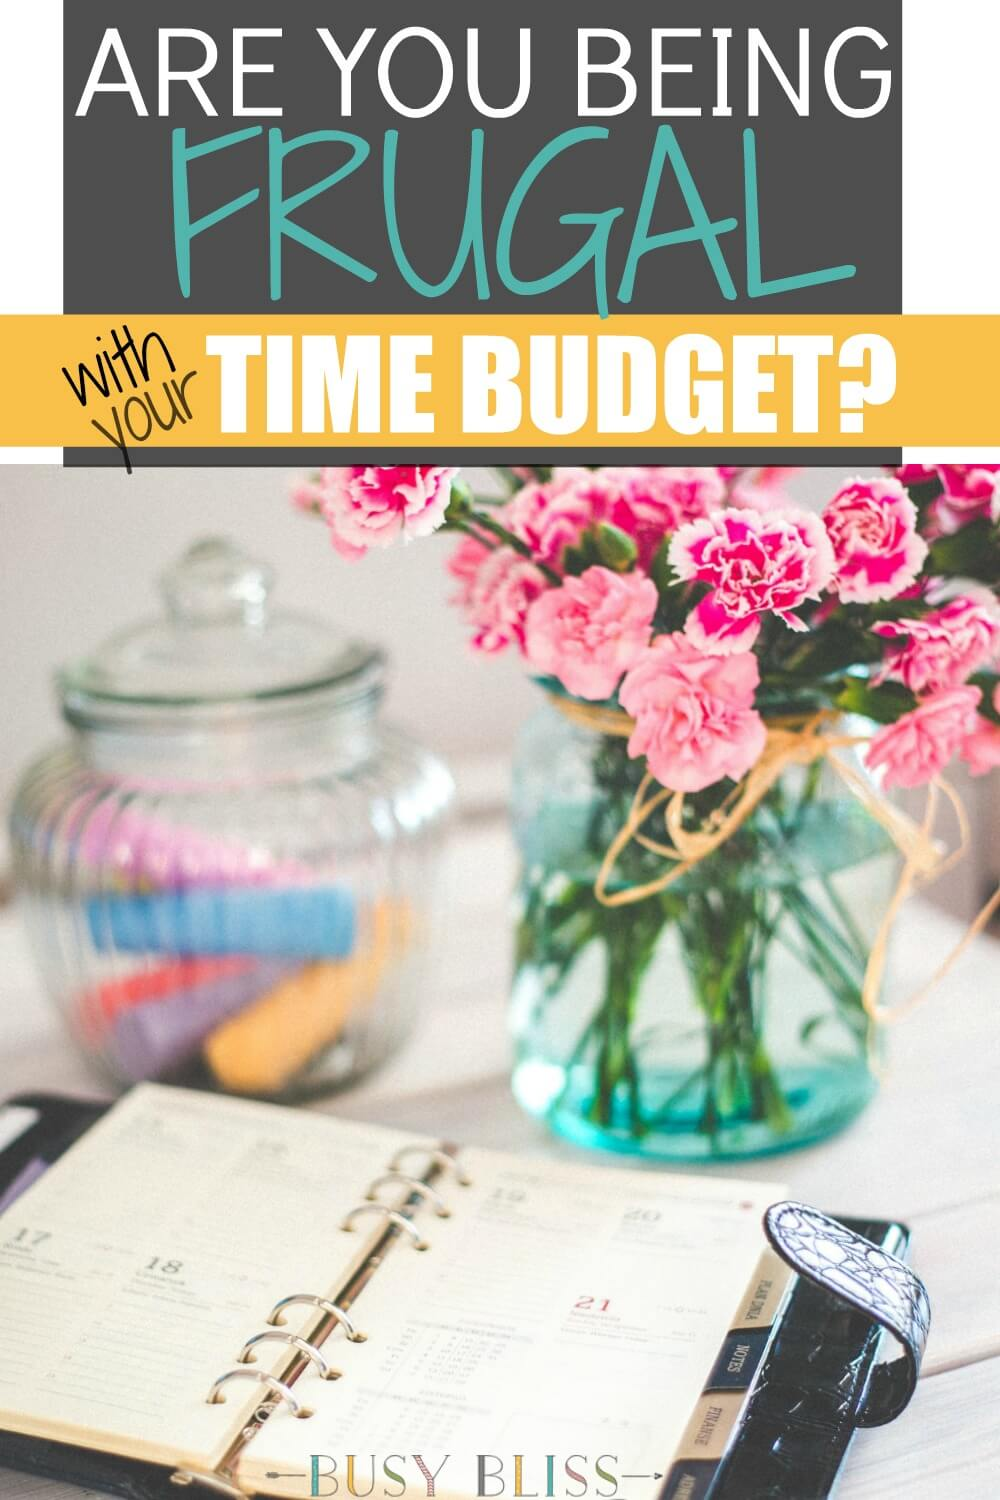 Most of us are well aware of the concept of budgeting and frugality in the sense of money management, but have you ever thought about applying thriftiness to your time budget?